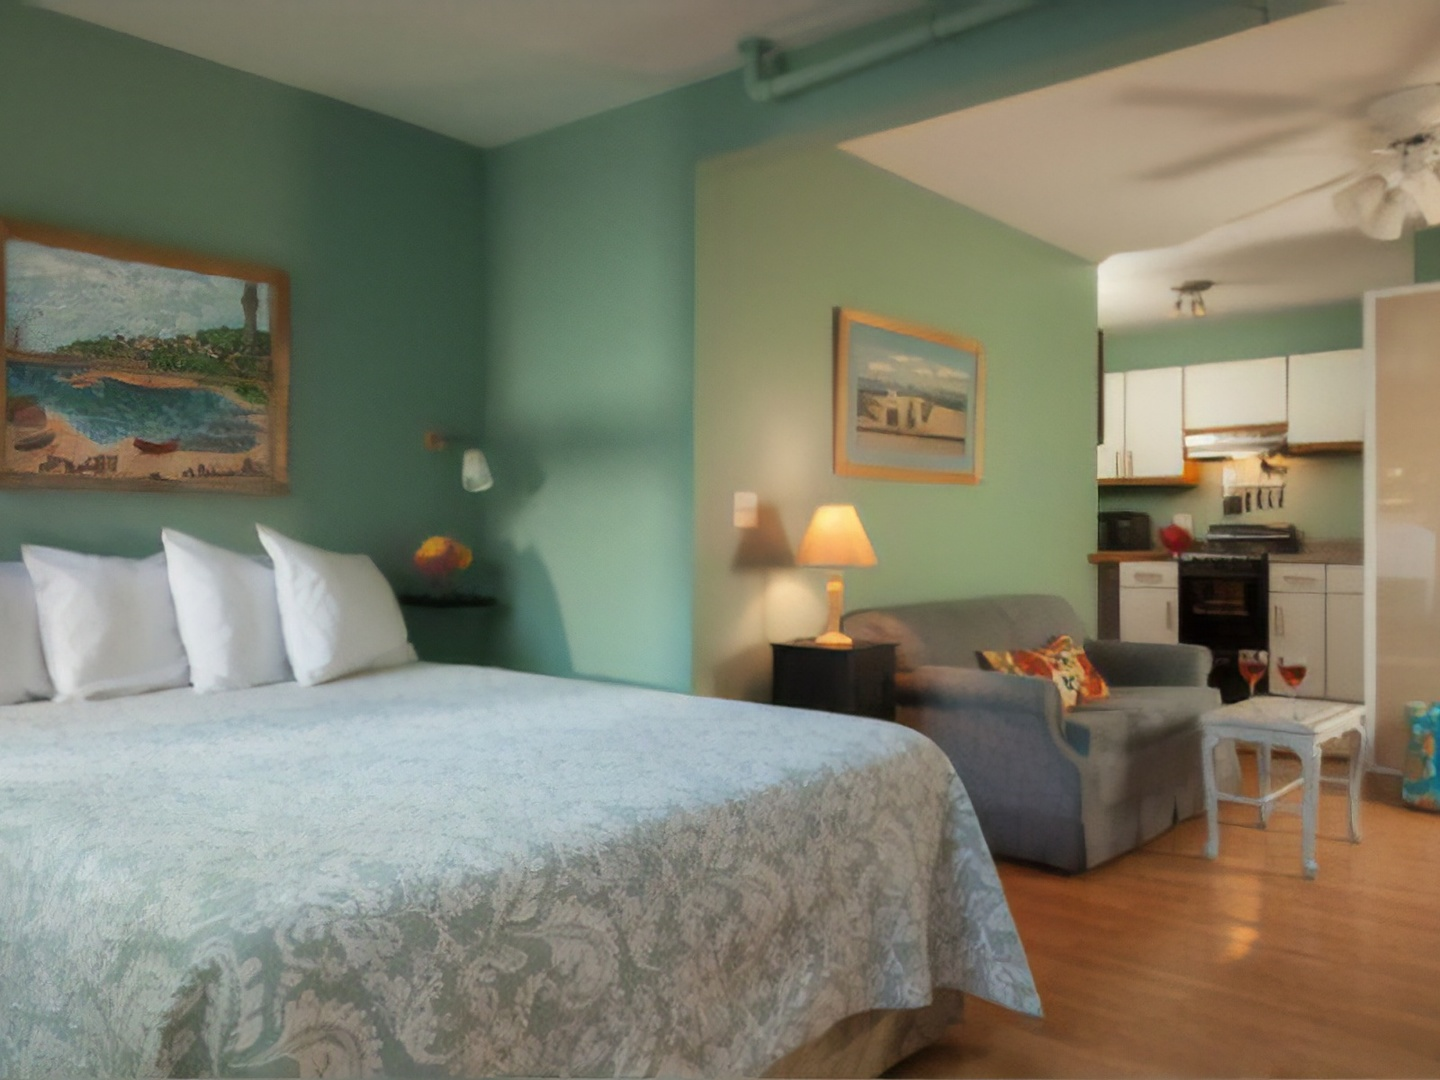 A bedroom with a large bed in a hotel room at The Provincetown Hotel at Gabriel's.